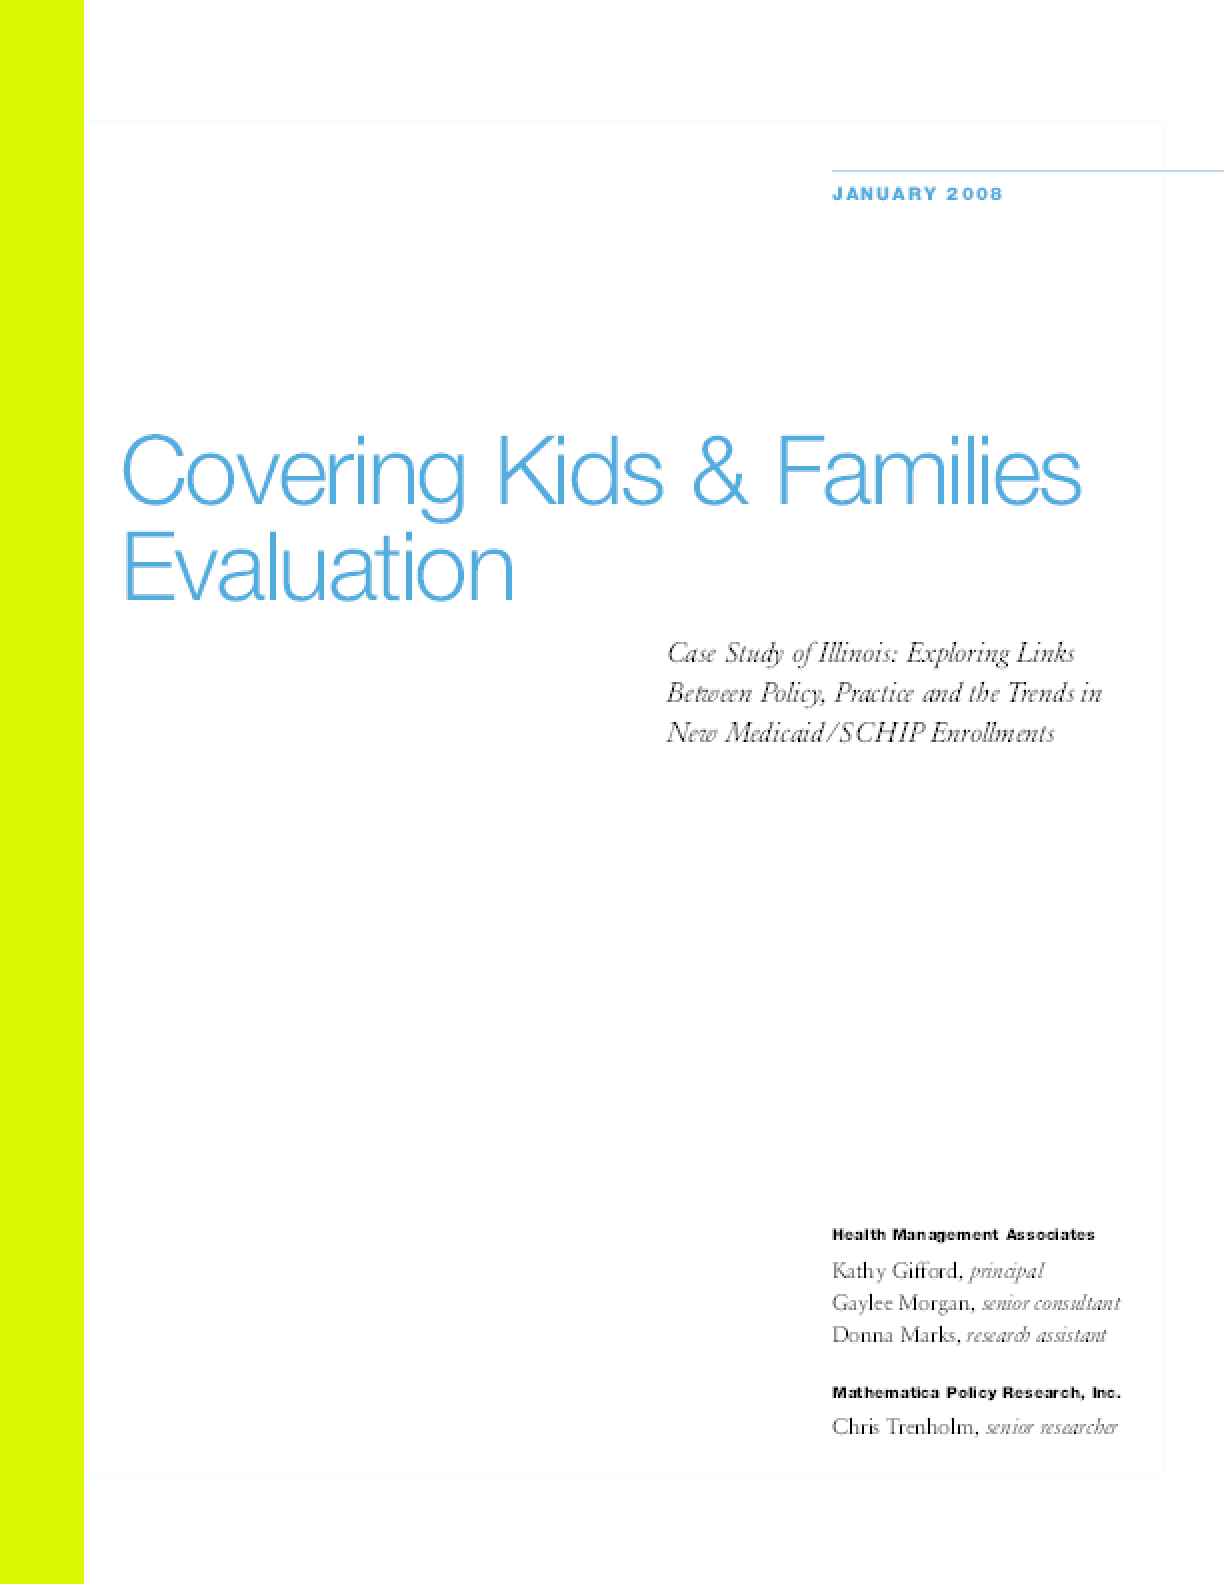 Covering Kids & Families Evaluation: Case Study of Illinois: Exploring Links Between Policy, Practice and the Trends in New Medicaid/SCHIP Enrollments